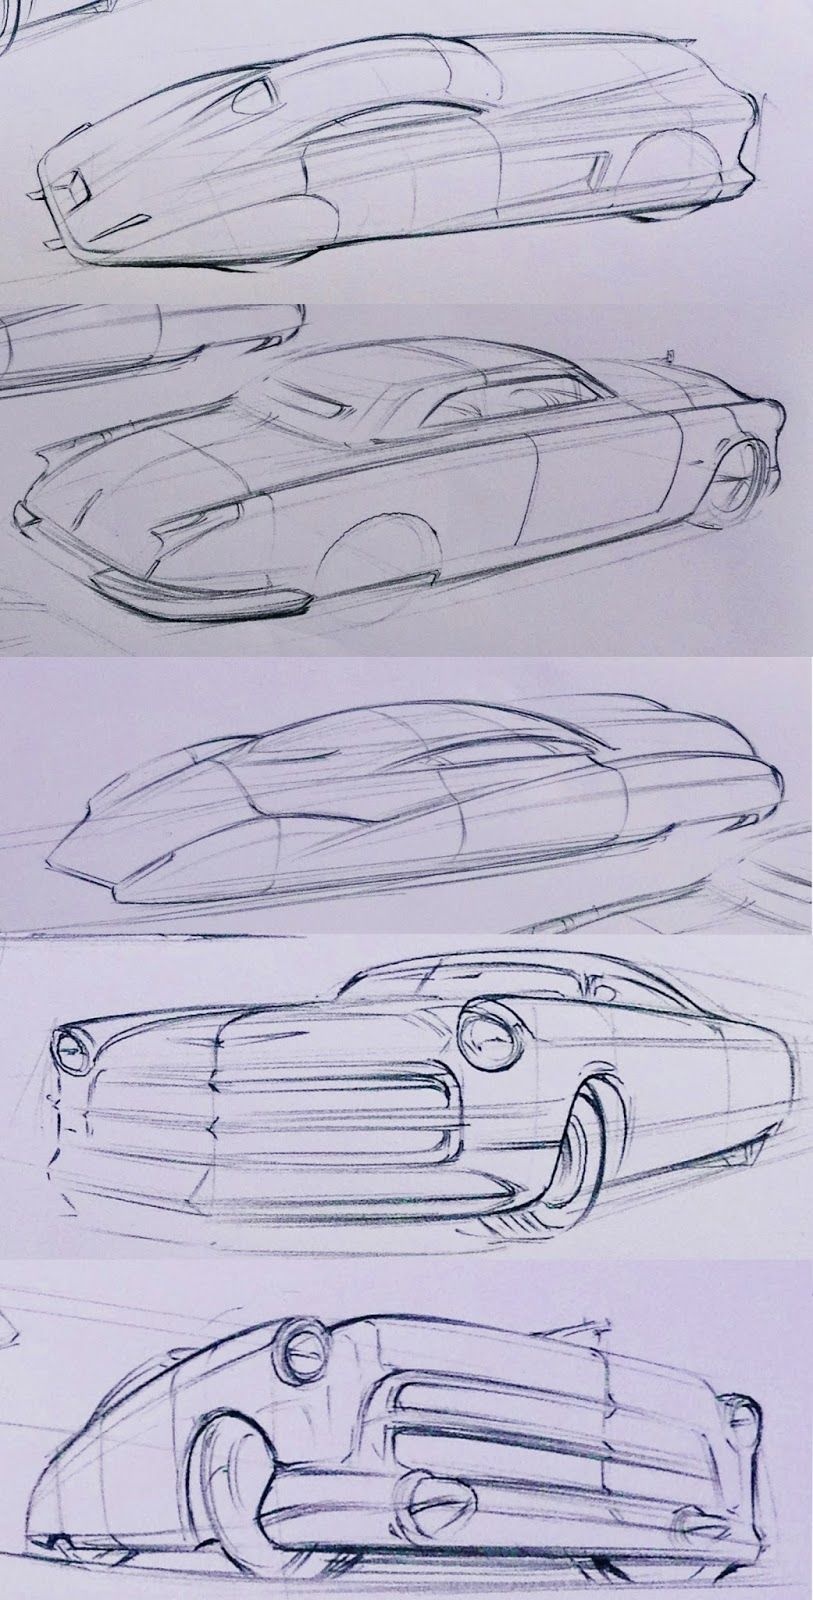 Velocity in 2D | Sketch | Pinterest | 2d, Sketches and Cars